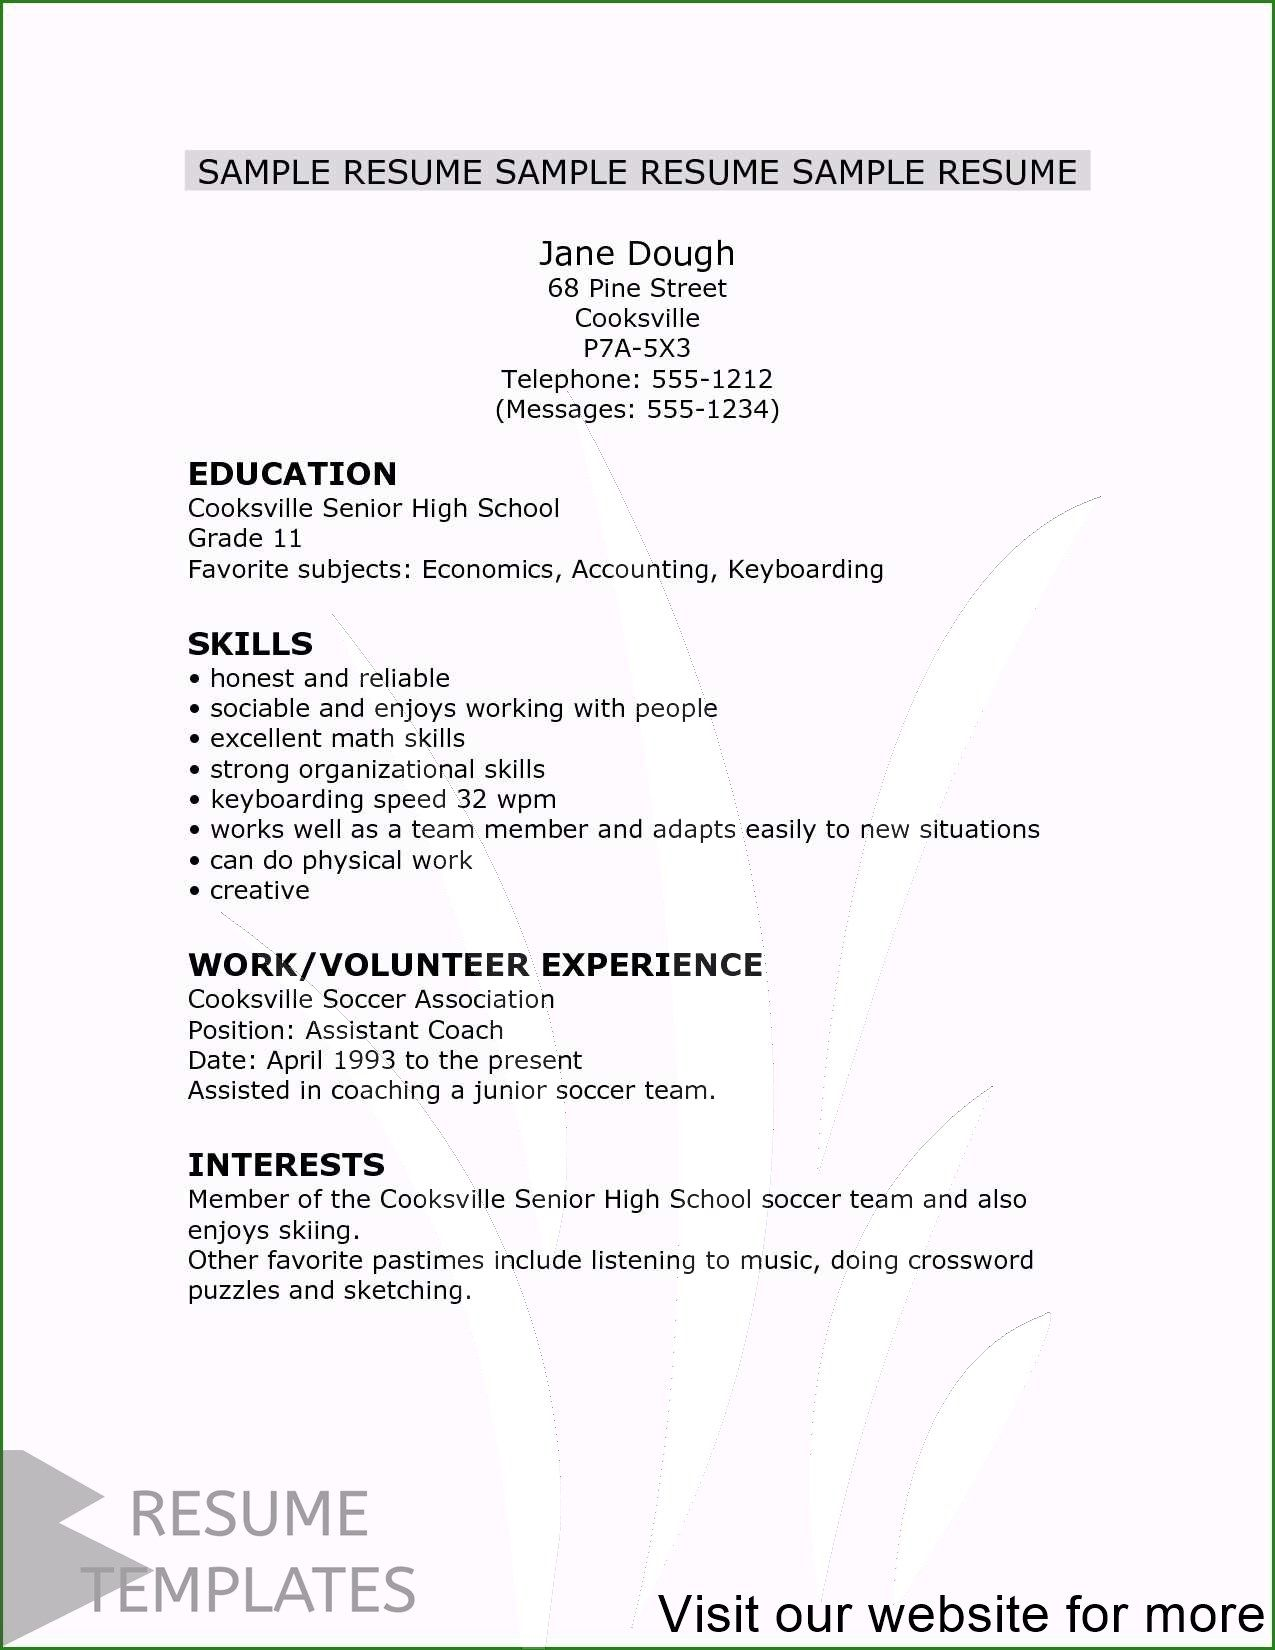 resume builder free online download in 2020 Resume cover